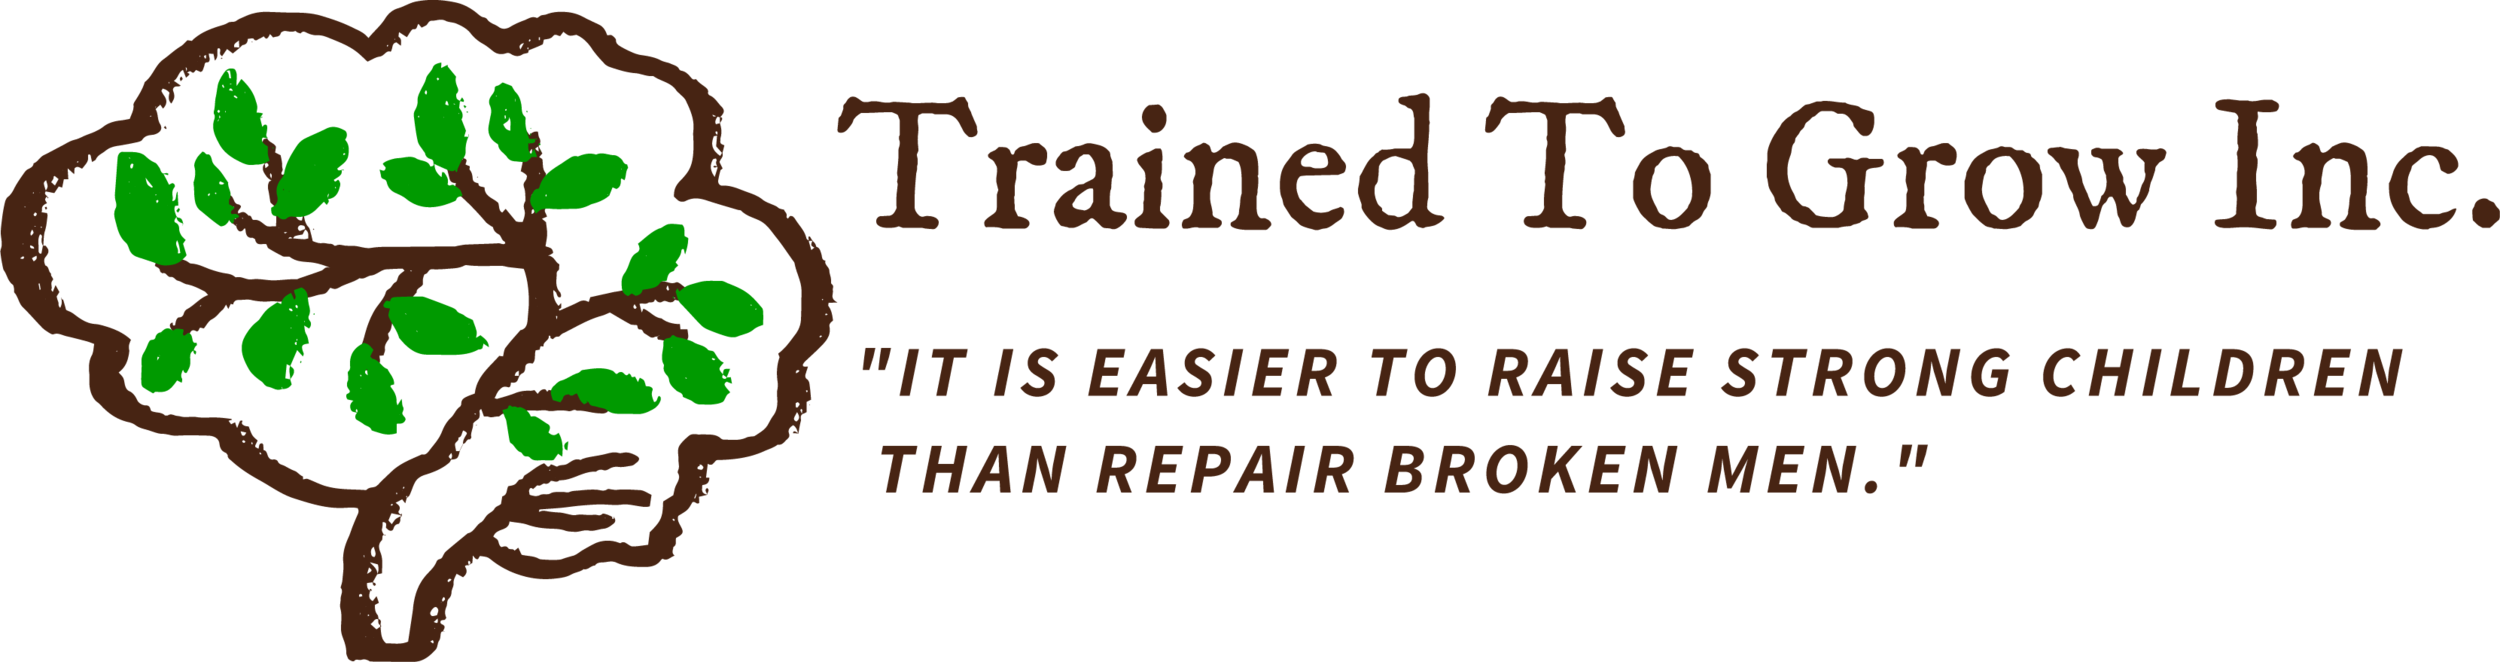 Trained to Grow Inc.png